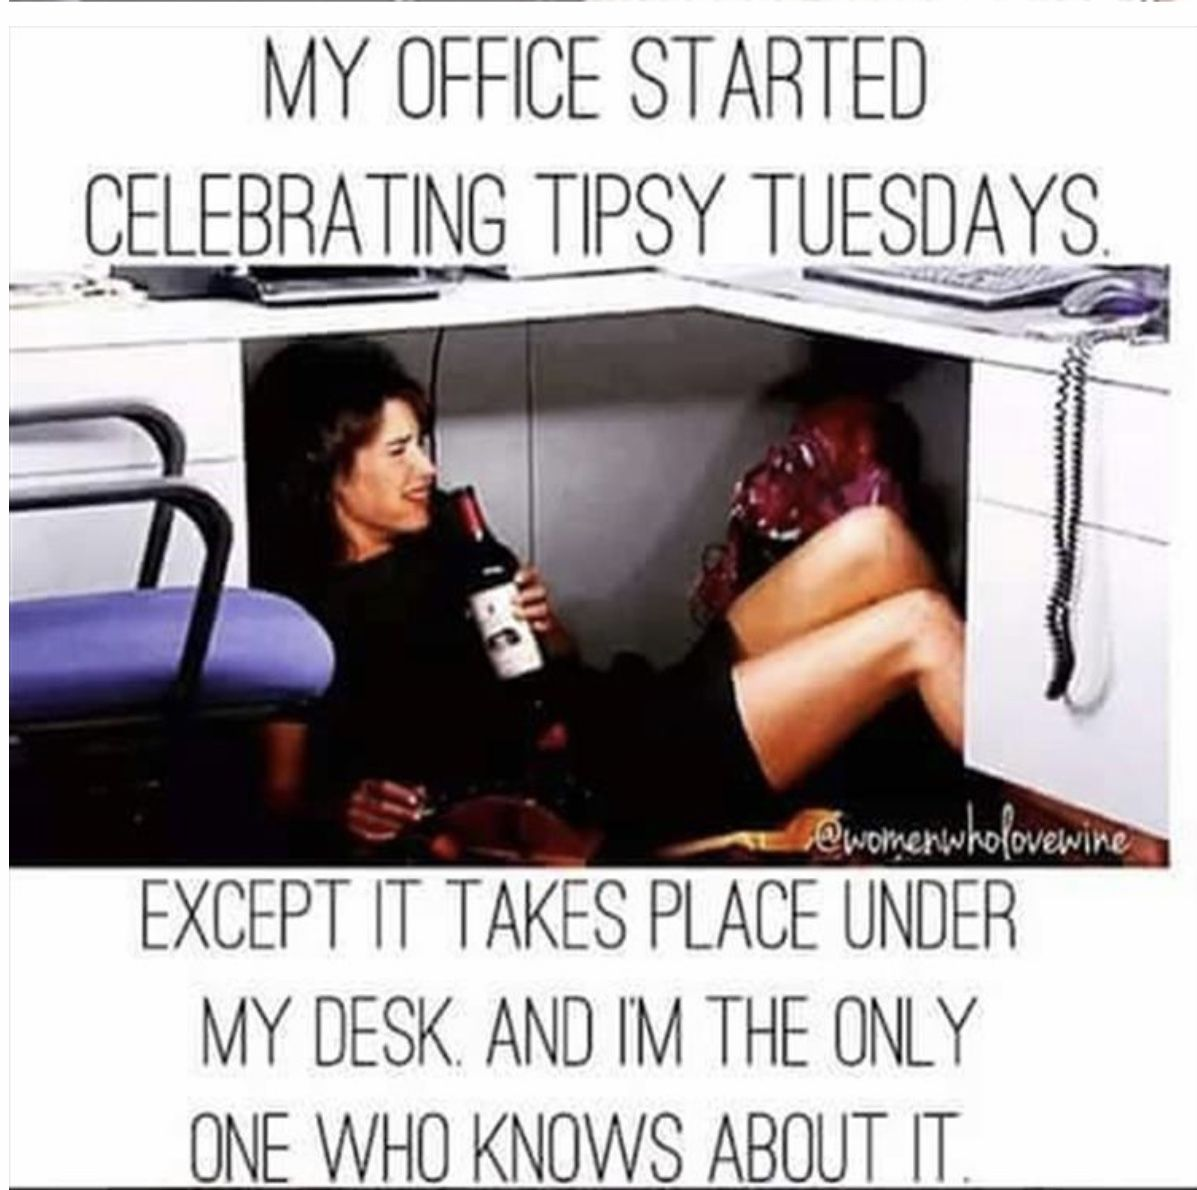 Tuesday meme image by Laura knowles on Make me Laugh in